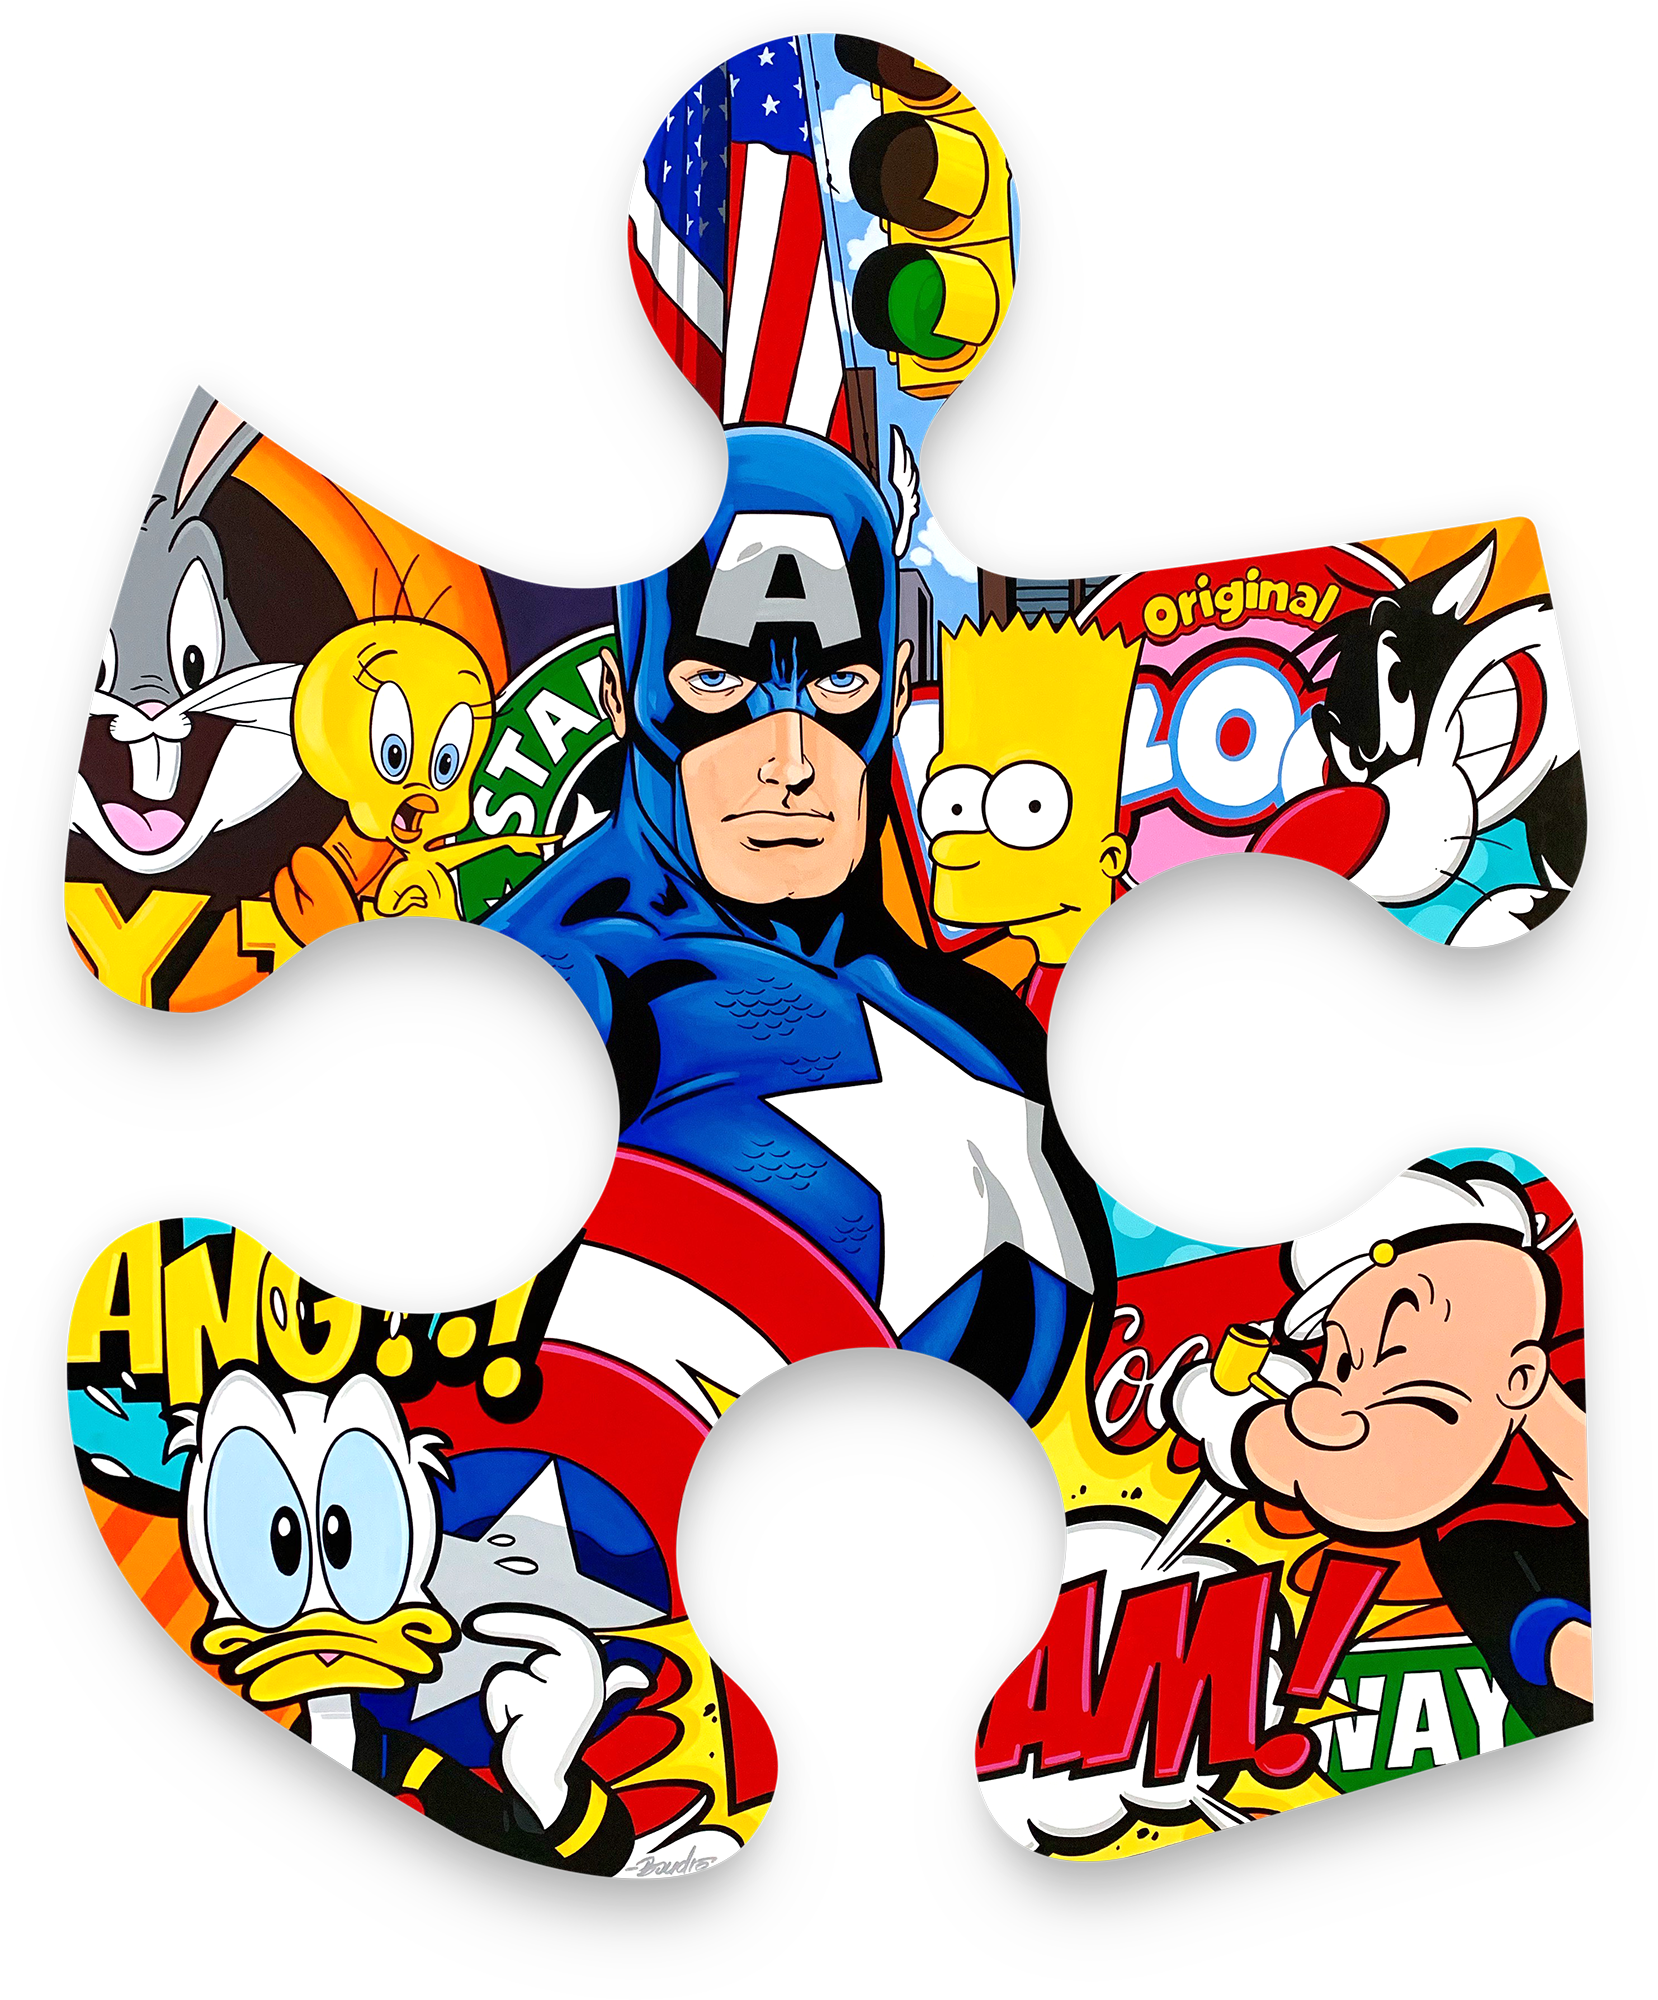 Guy Boudro - Captain America and Friends in New York (Puzzle) , 9200-012-021